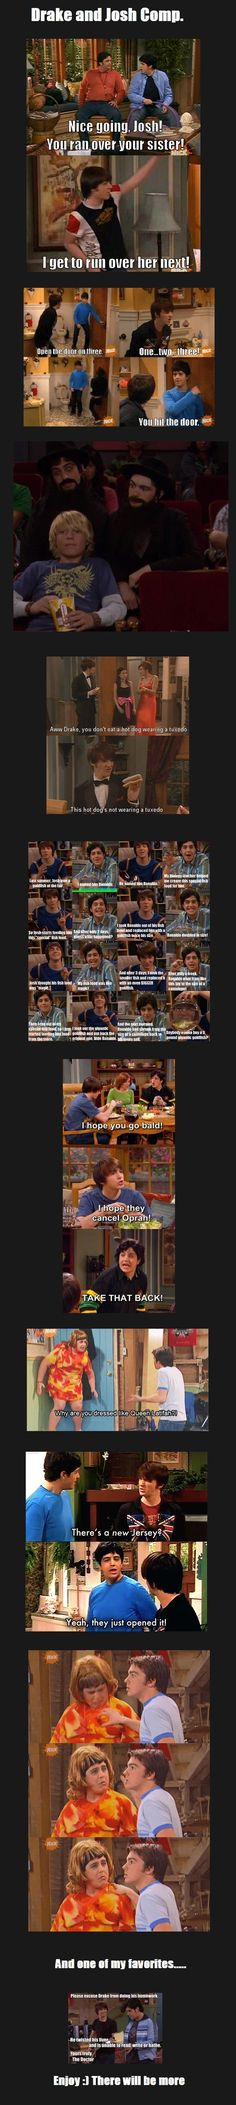 Drake and Josh... Those were the good days...